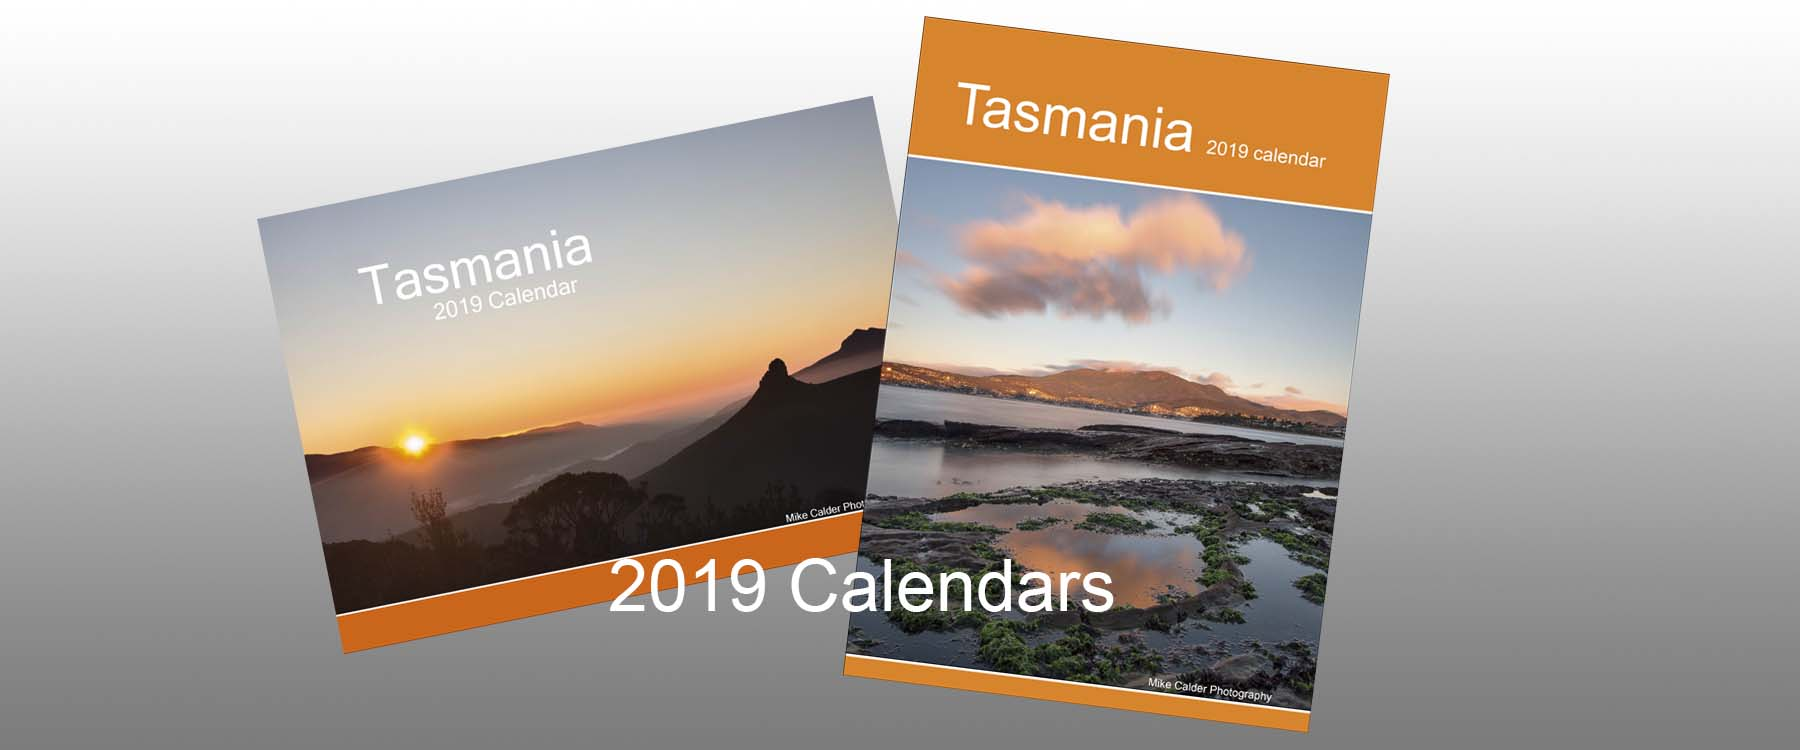 2019 calendars with background